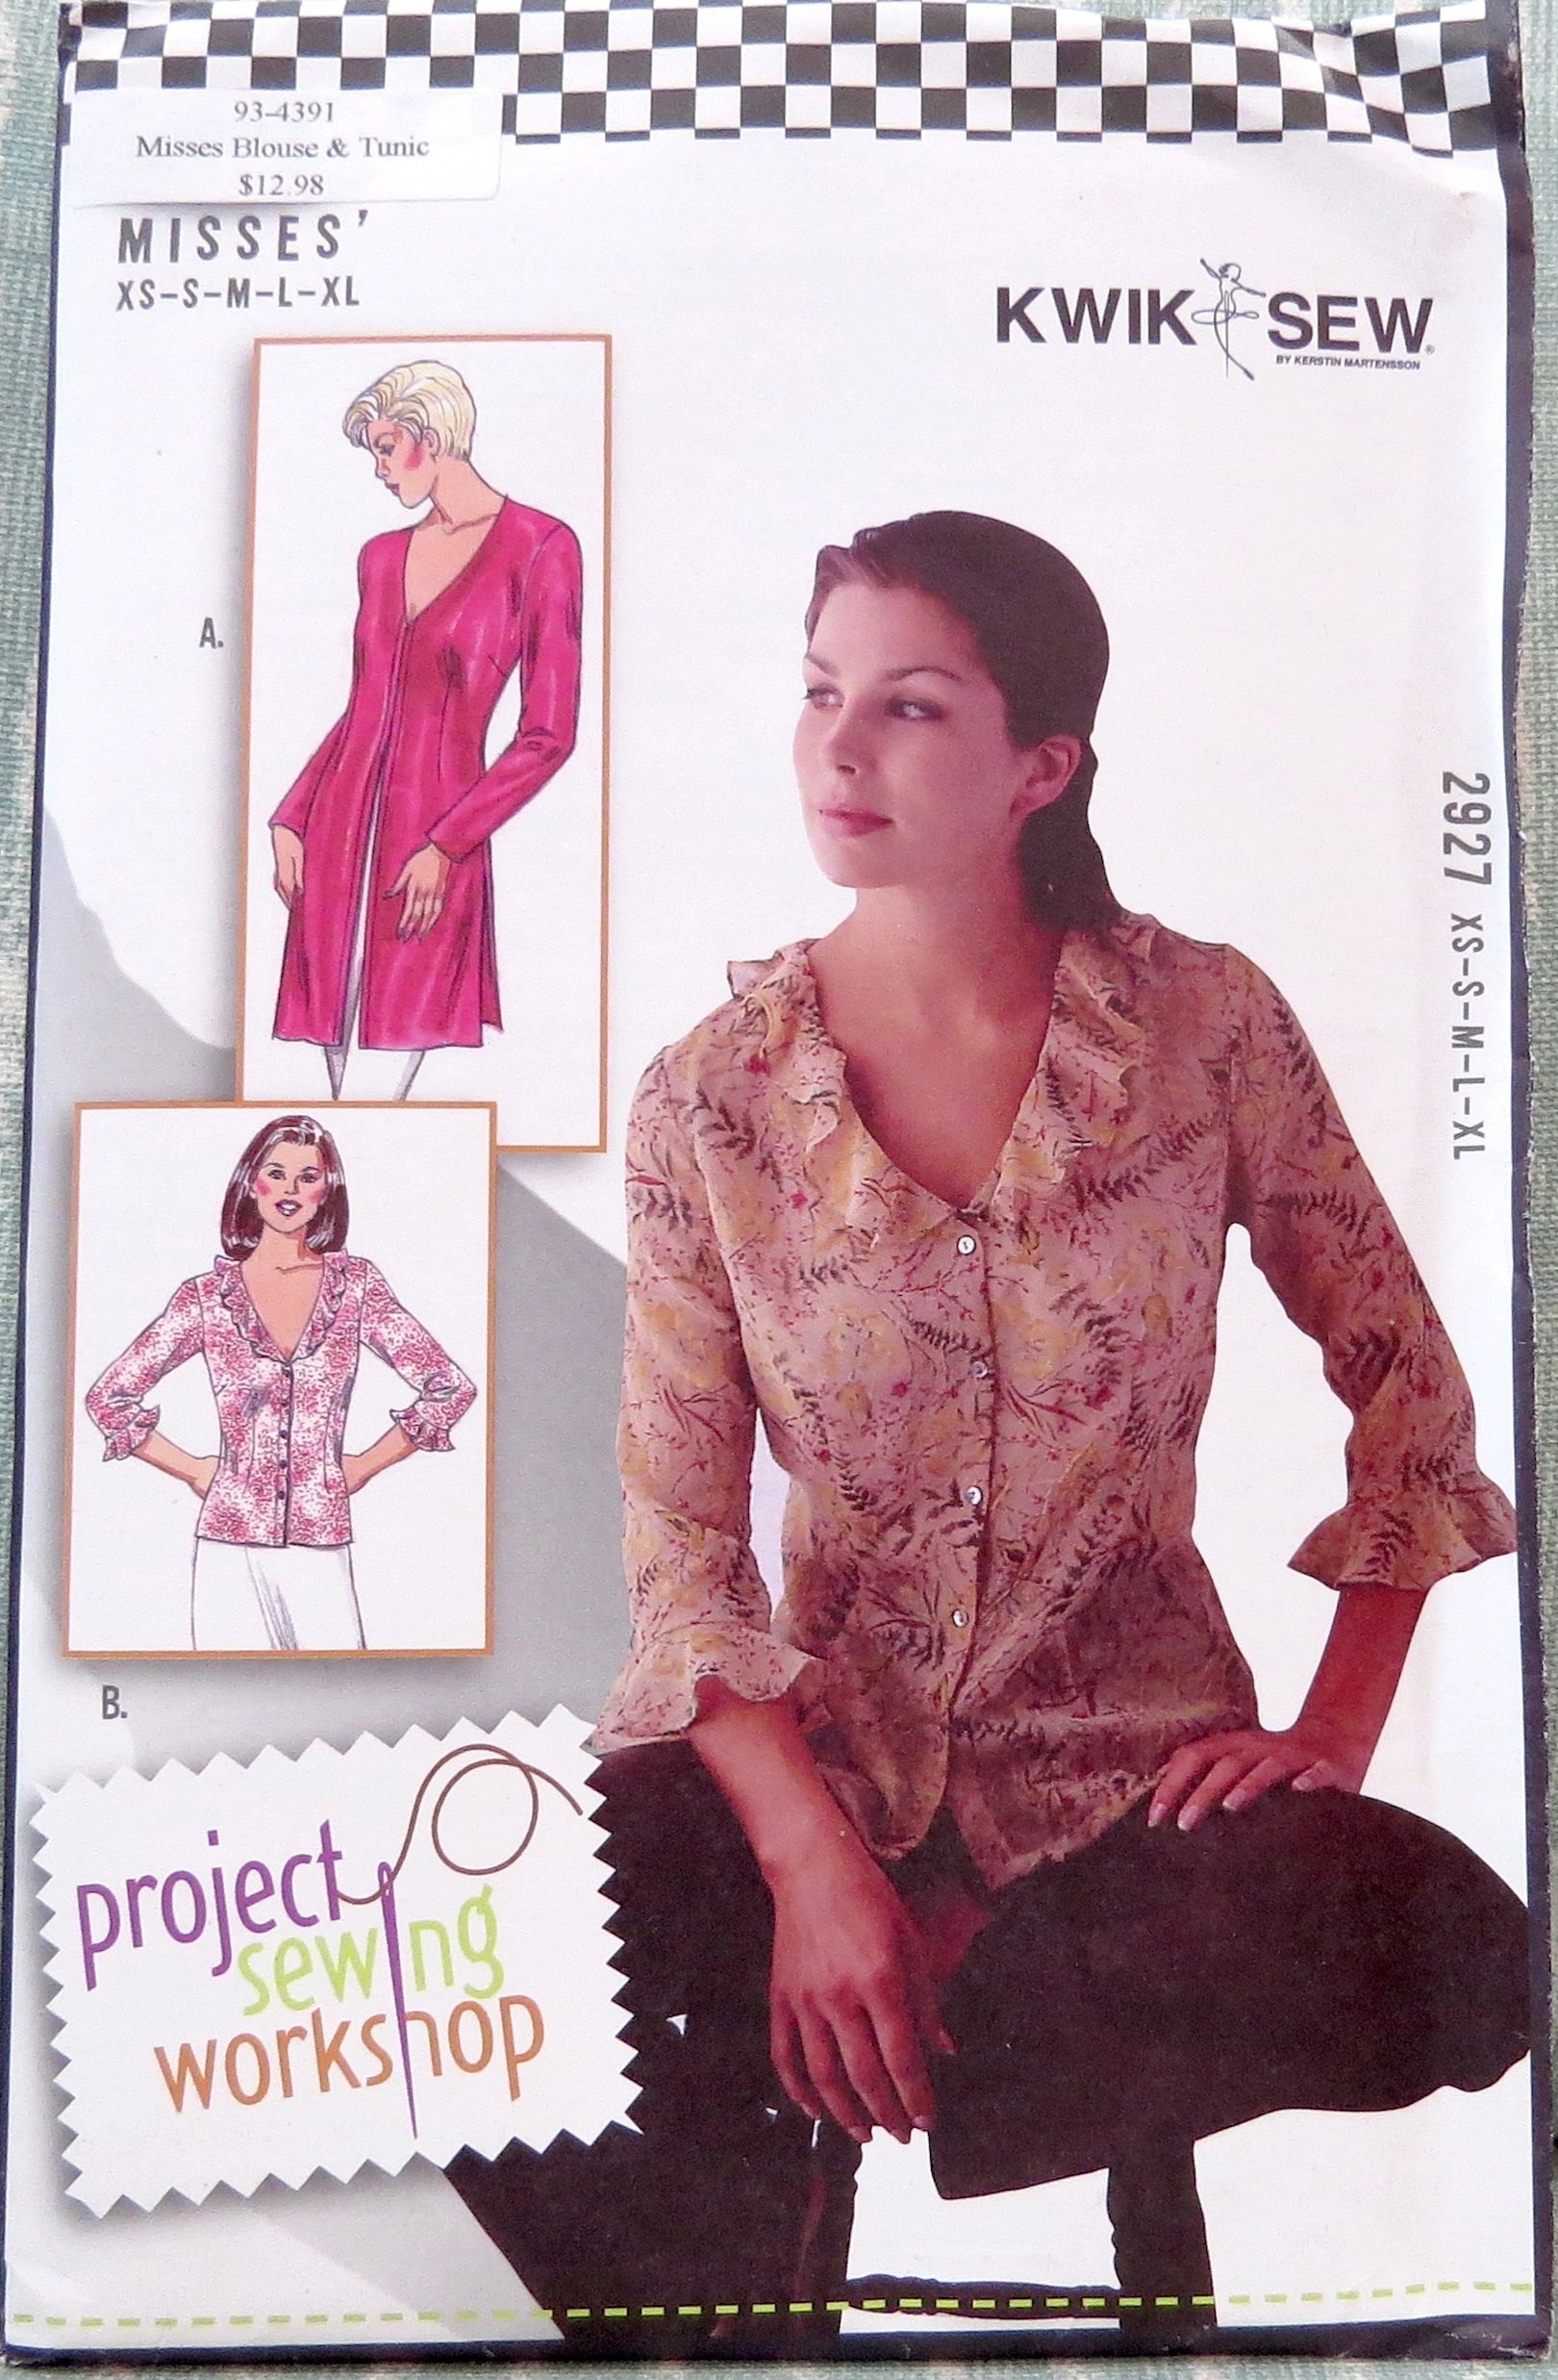 Misses Blouse & Tunic by Kwik Sew #2927 Project Sewing Workshop Pattern